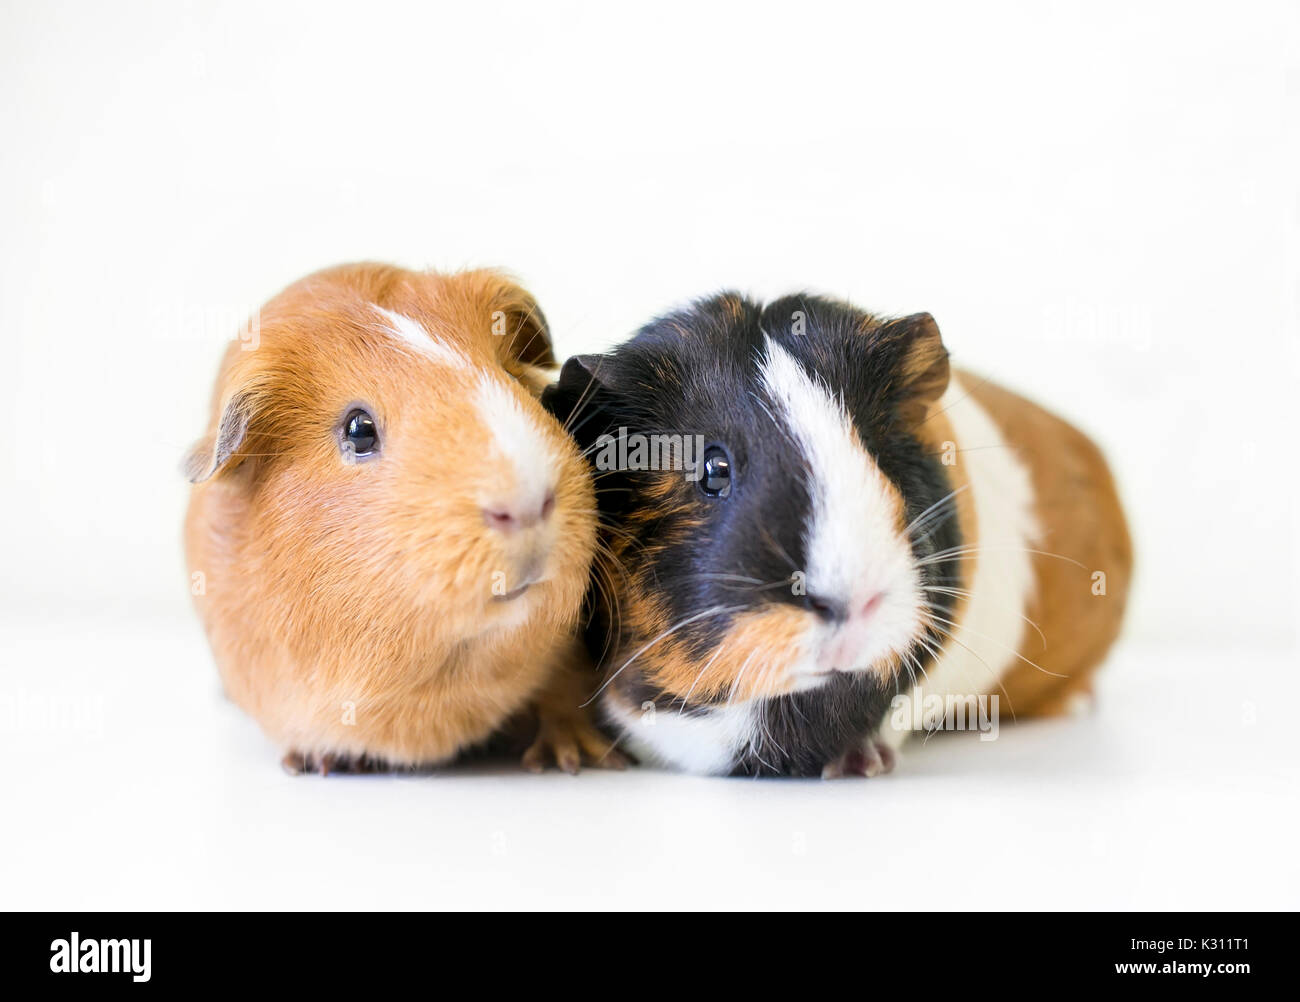 A pair of American Guinea Pigs - Stock Image